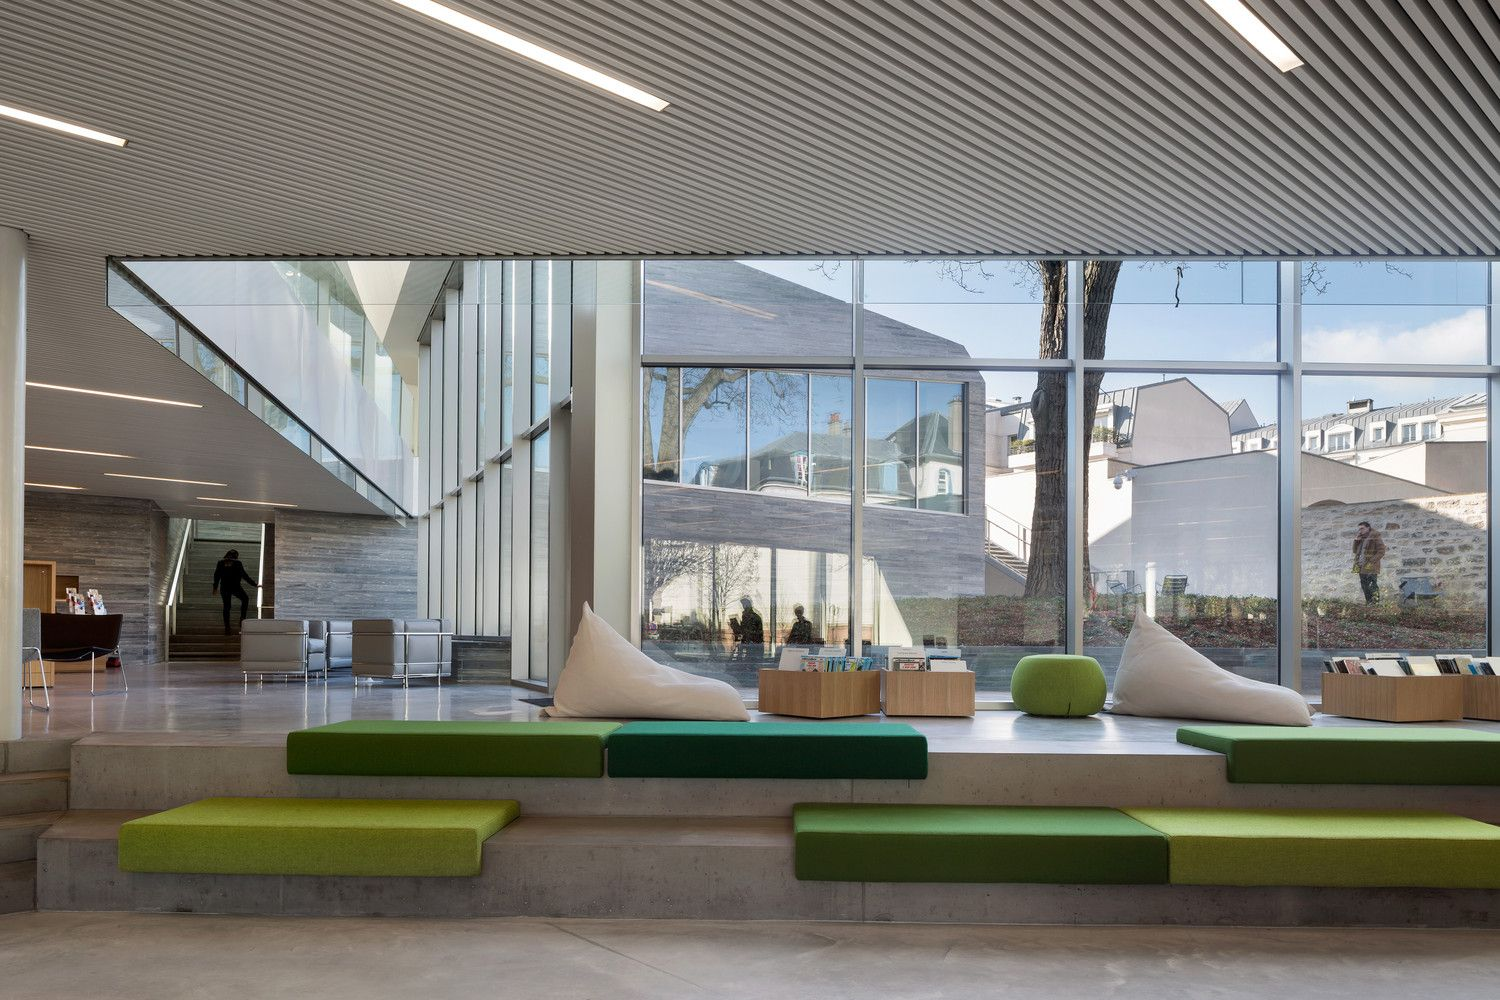 Gallery Of Media Library In Bourg La Reine Pascale Guedot